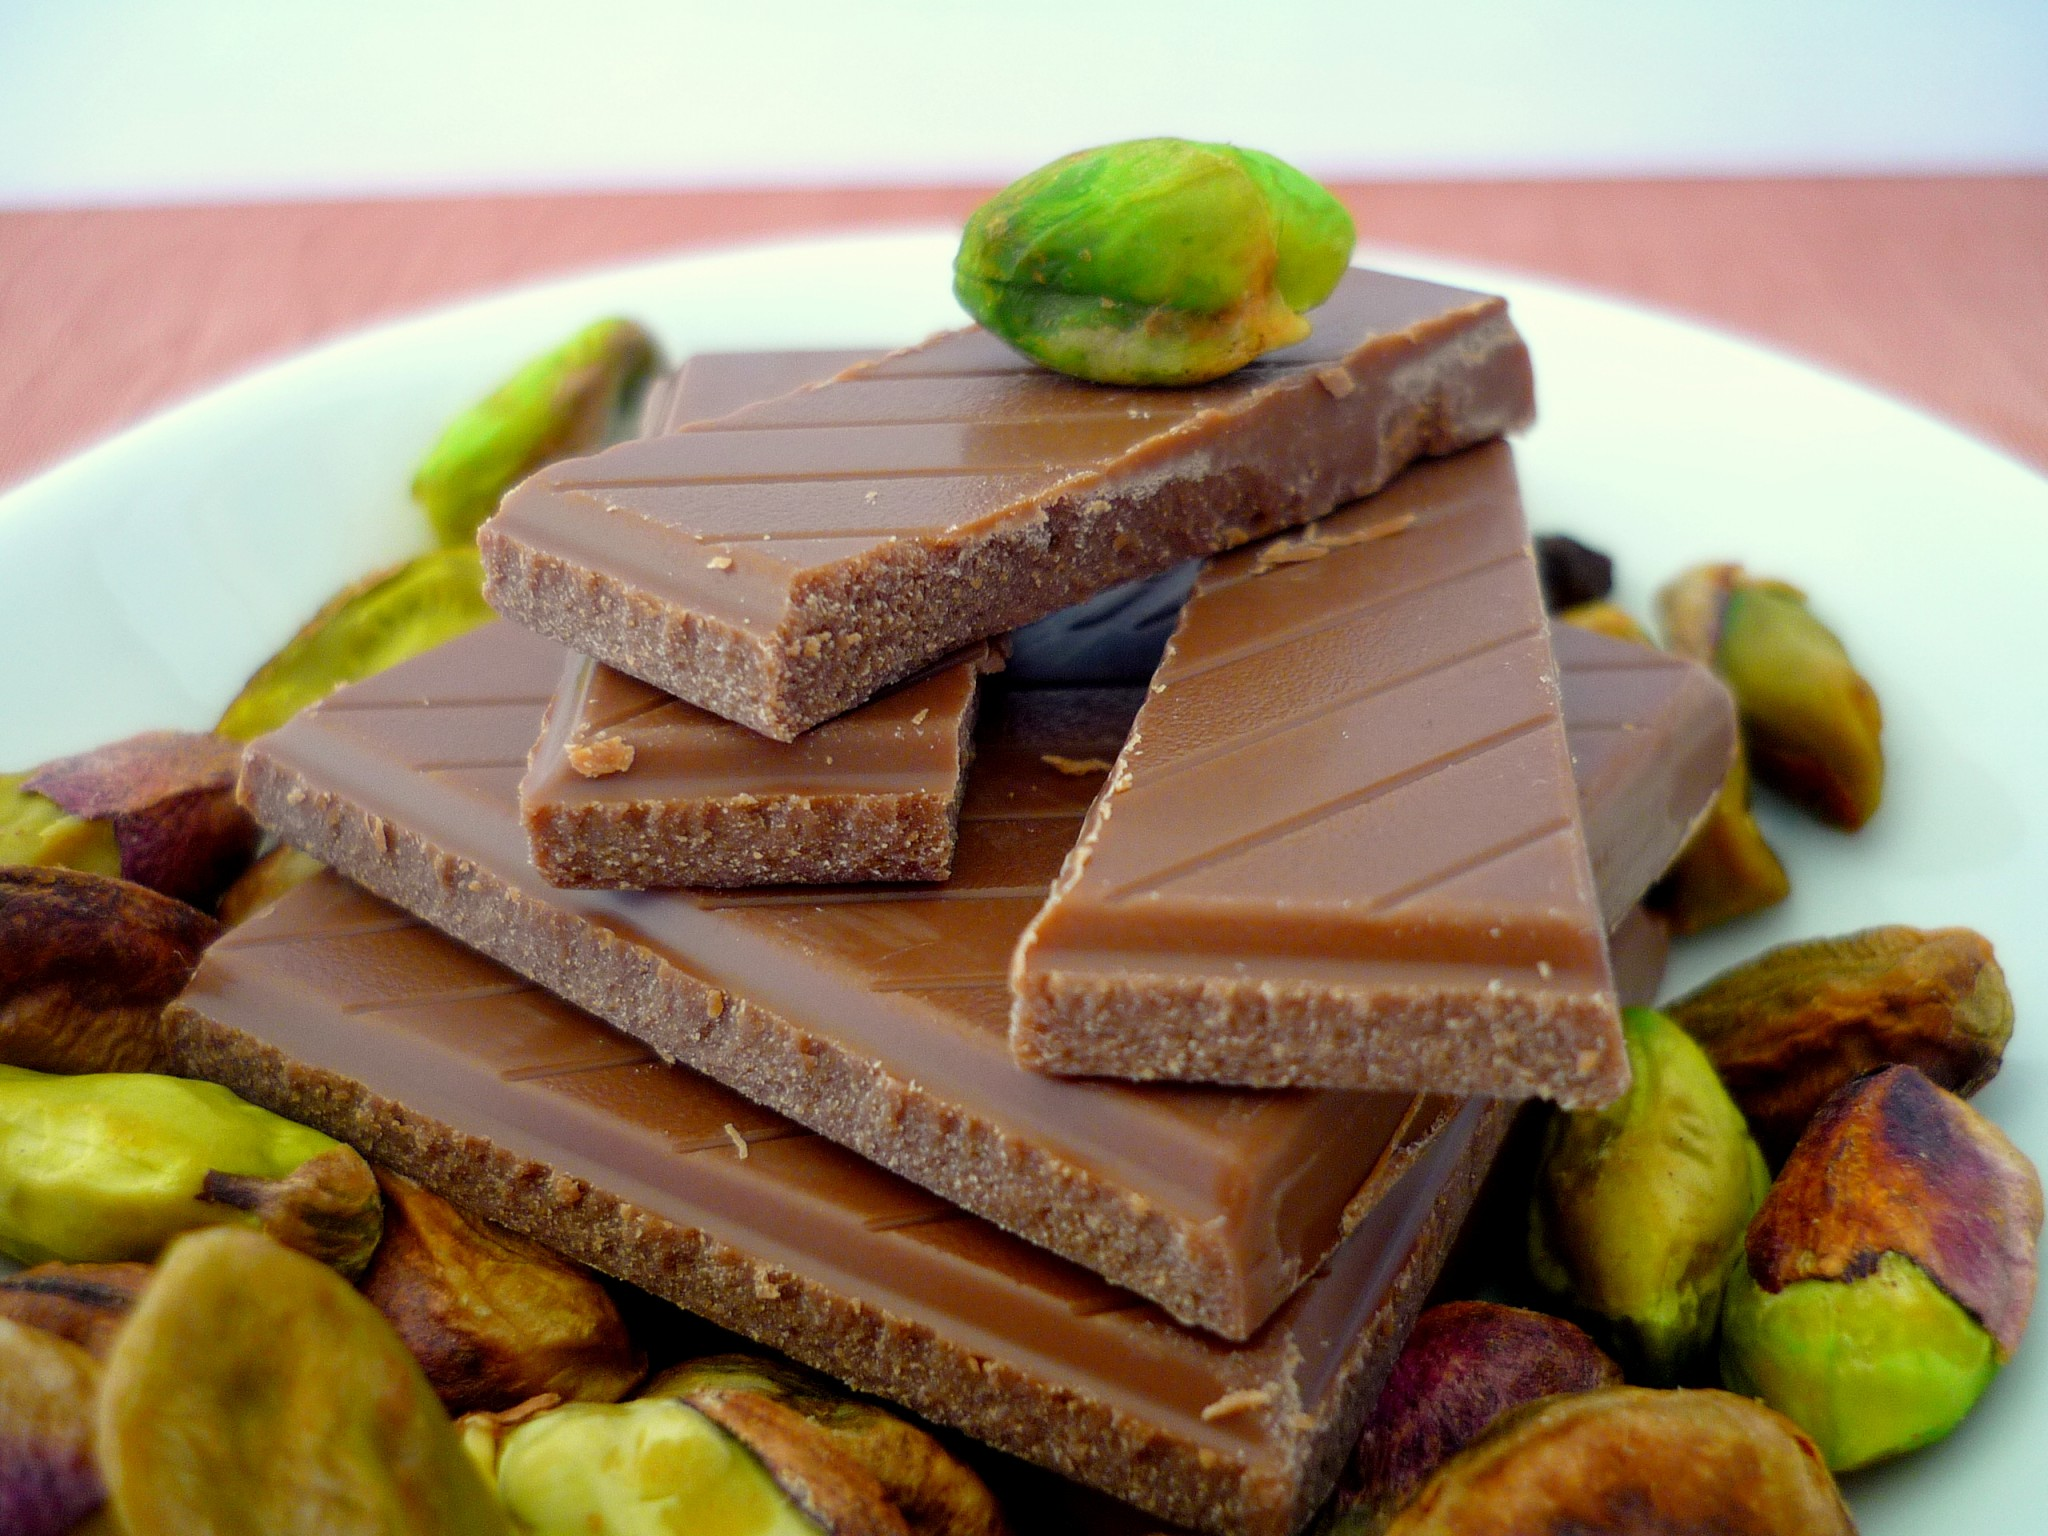 Chocolate and Pistachios for making macarons © French Moments